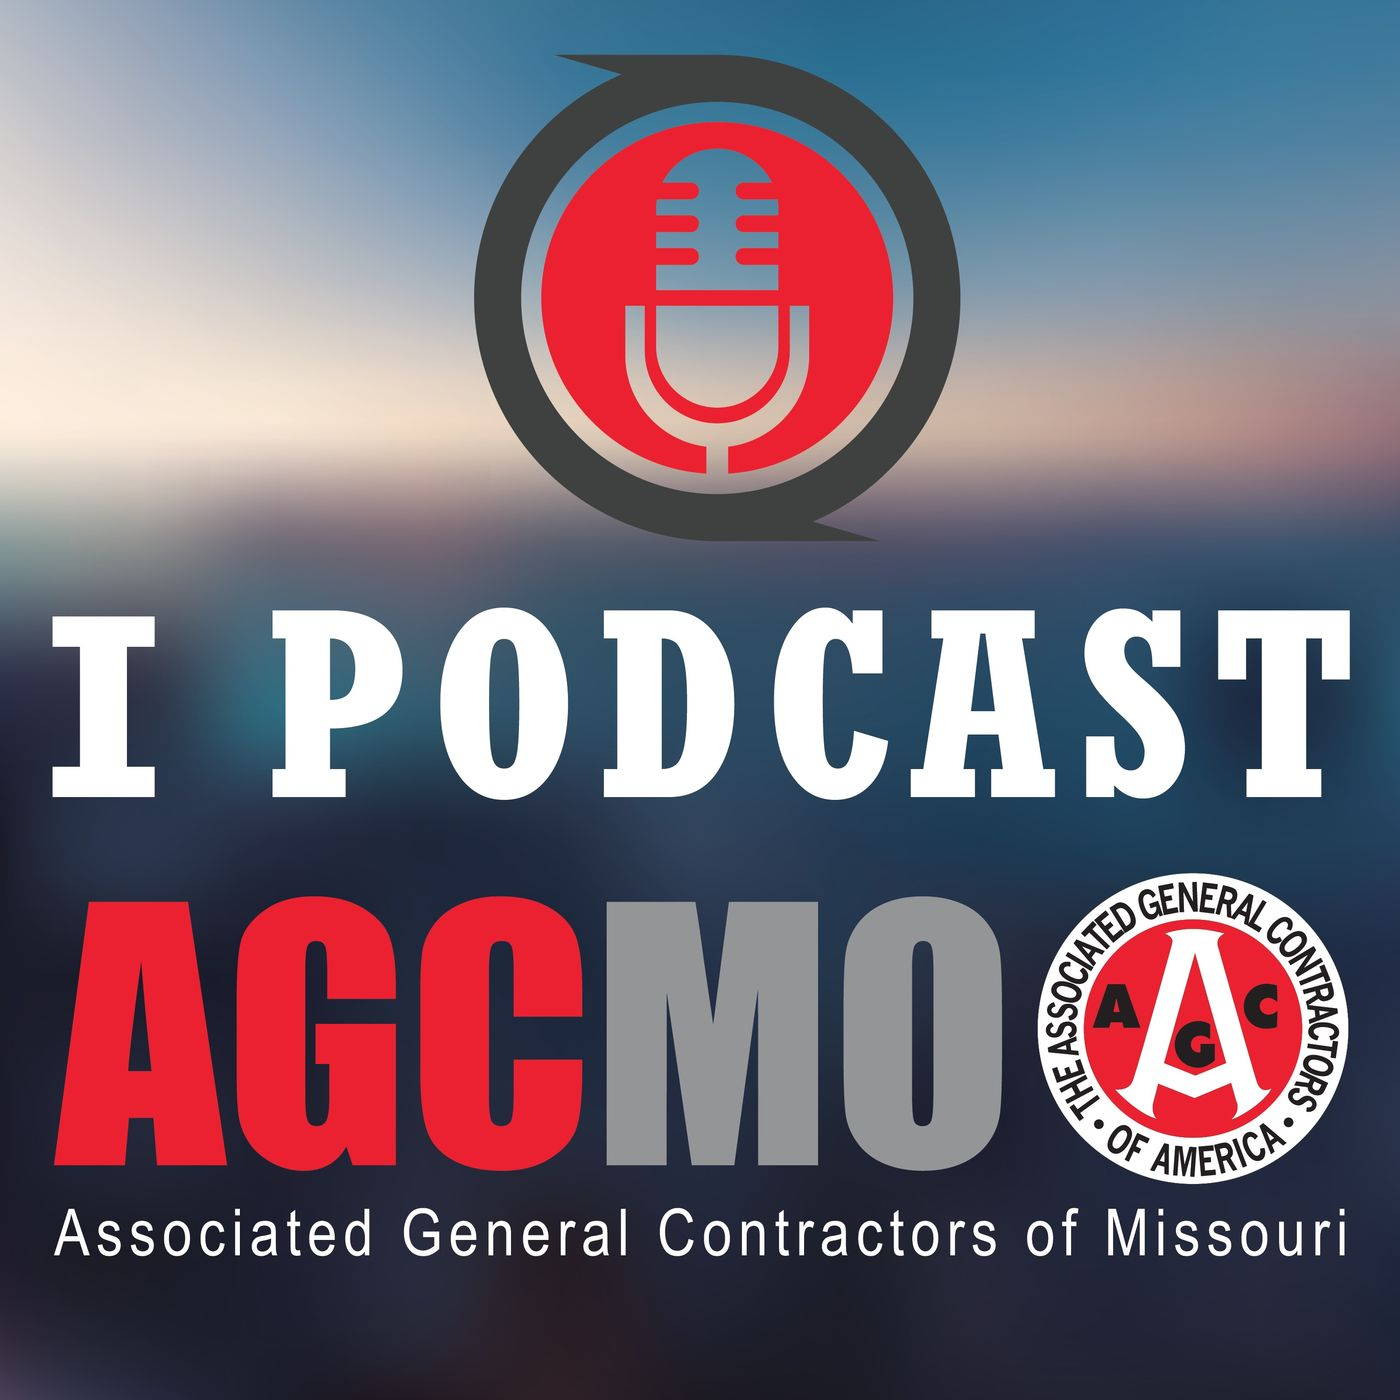 Welcome to I podcast AGCMO, the 5 W's